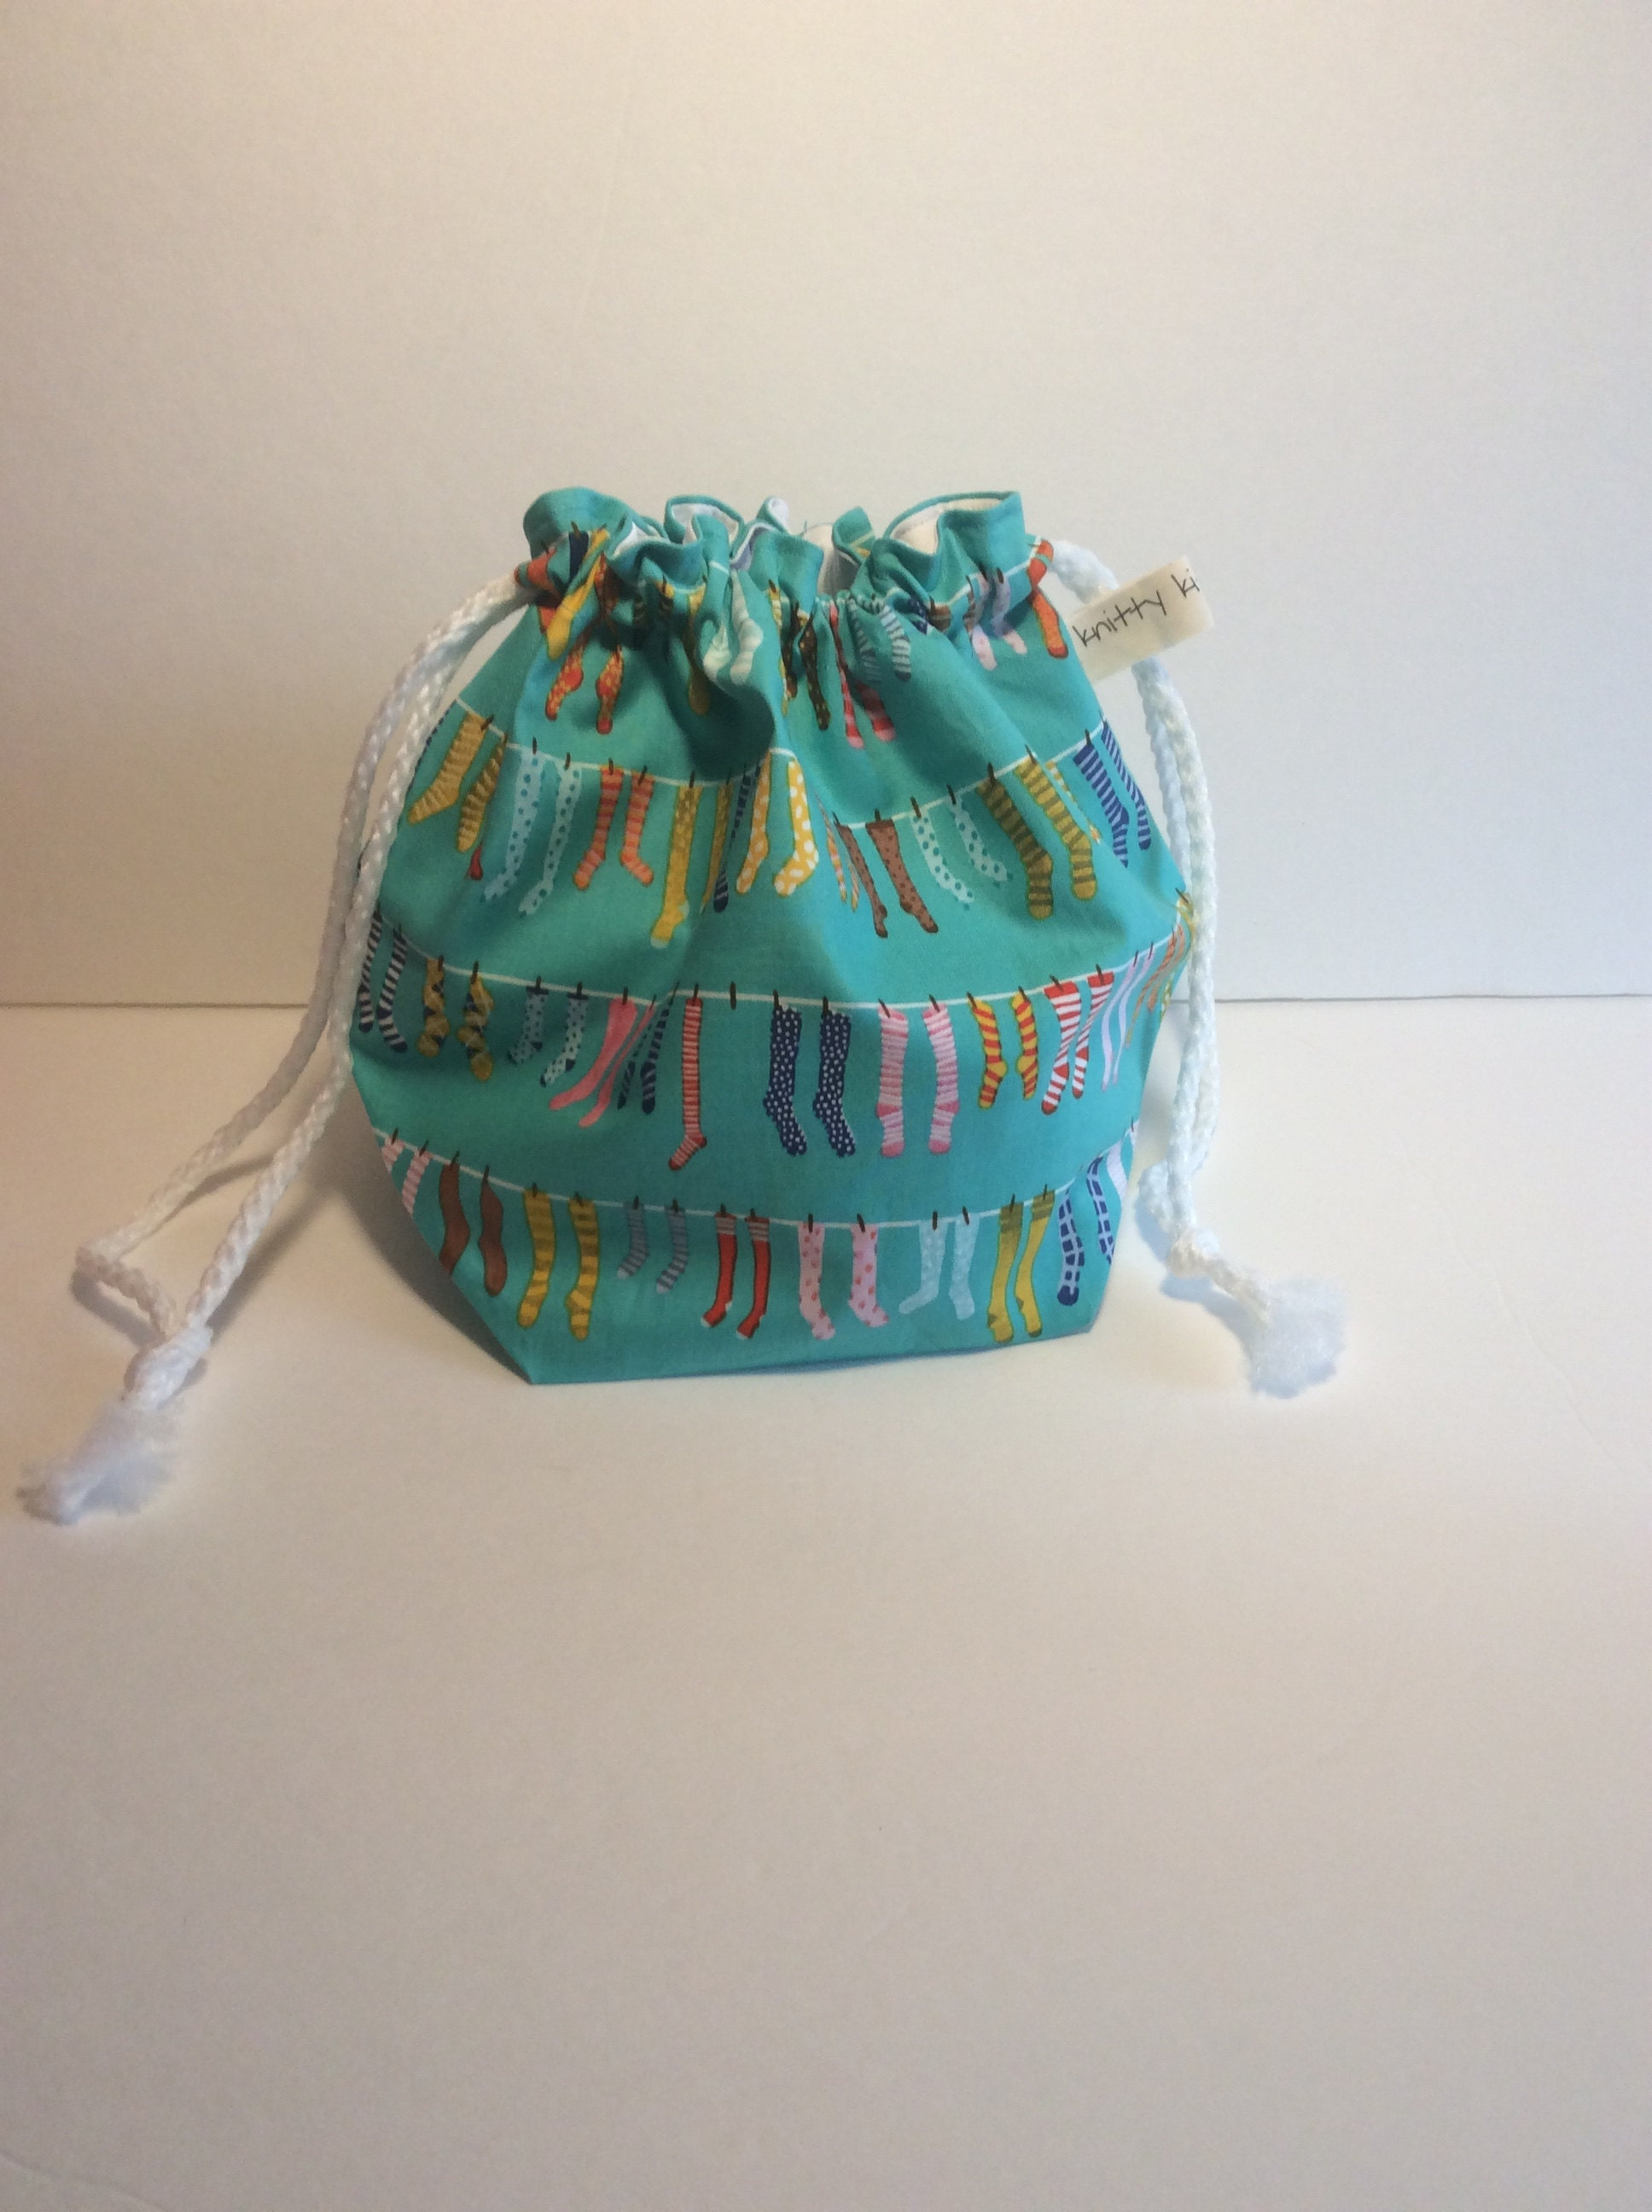 New drawstring project bag